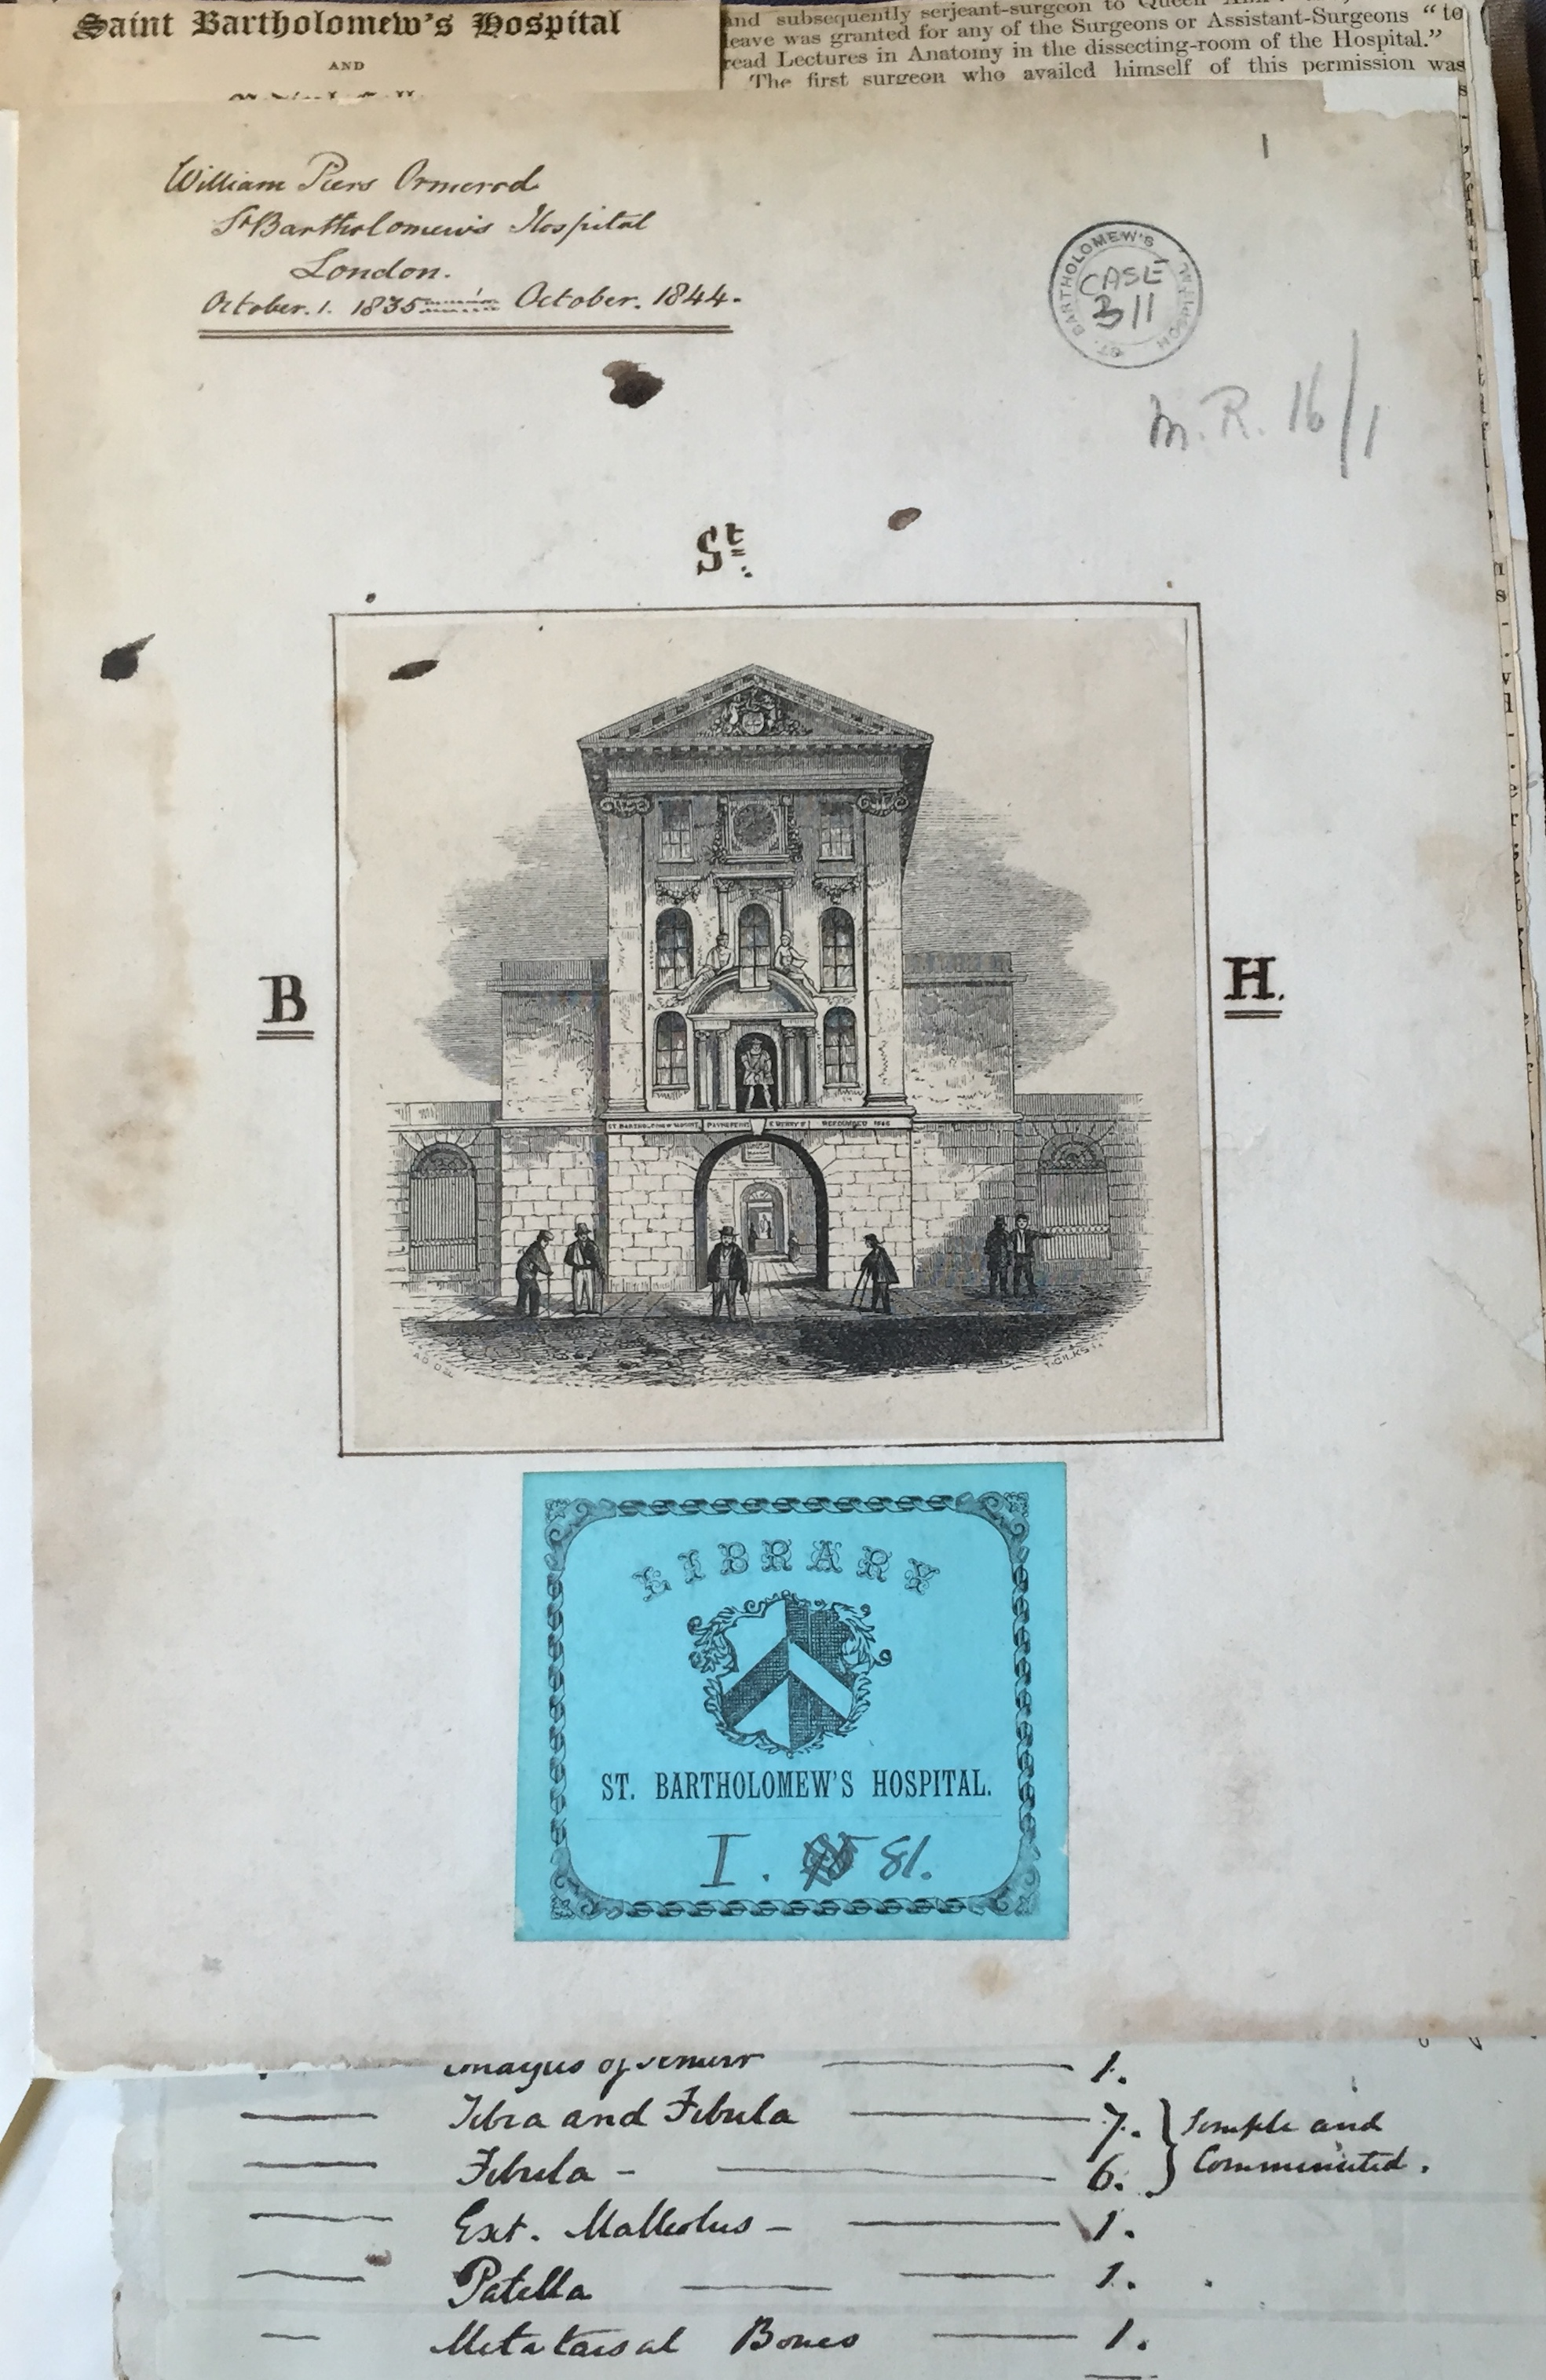 """Frontpage of Omerod's """"Case-Handbook"""" with library signature (courtesy of St. Bartholomew's Hospital Archives)"""